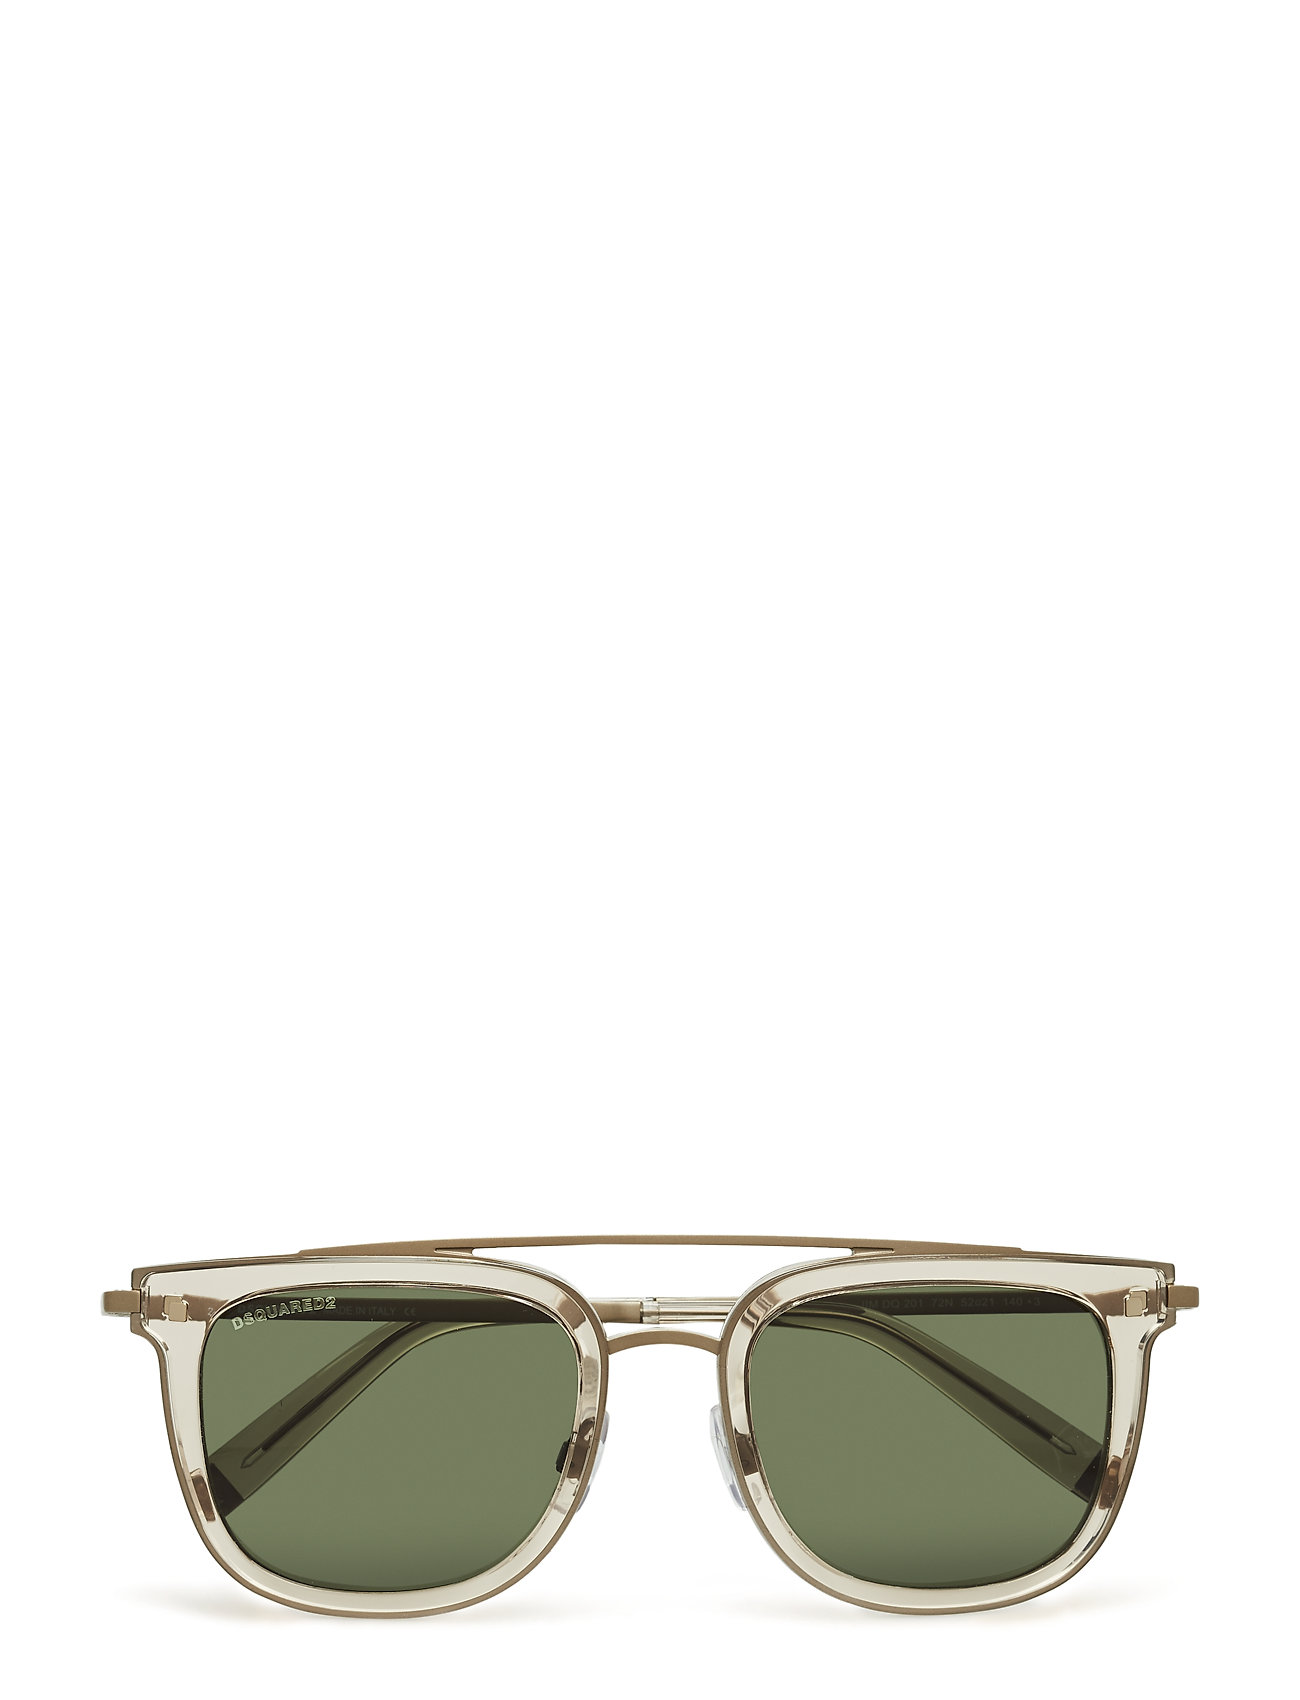 DSQUARED2 Dq0201 Wayfarer Sonnenbrille Gold DSQUARED2 SUNGLASSES